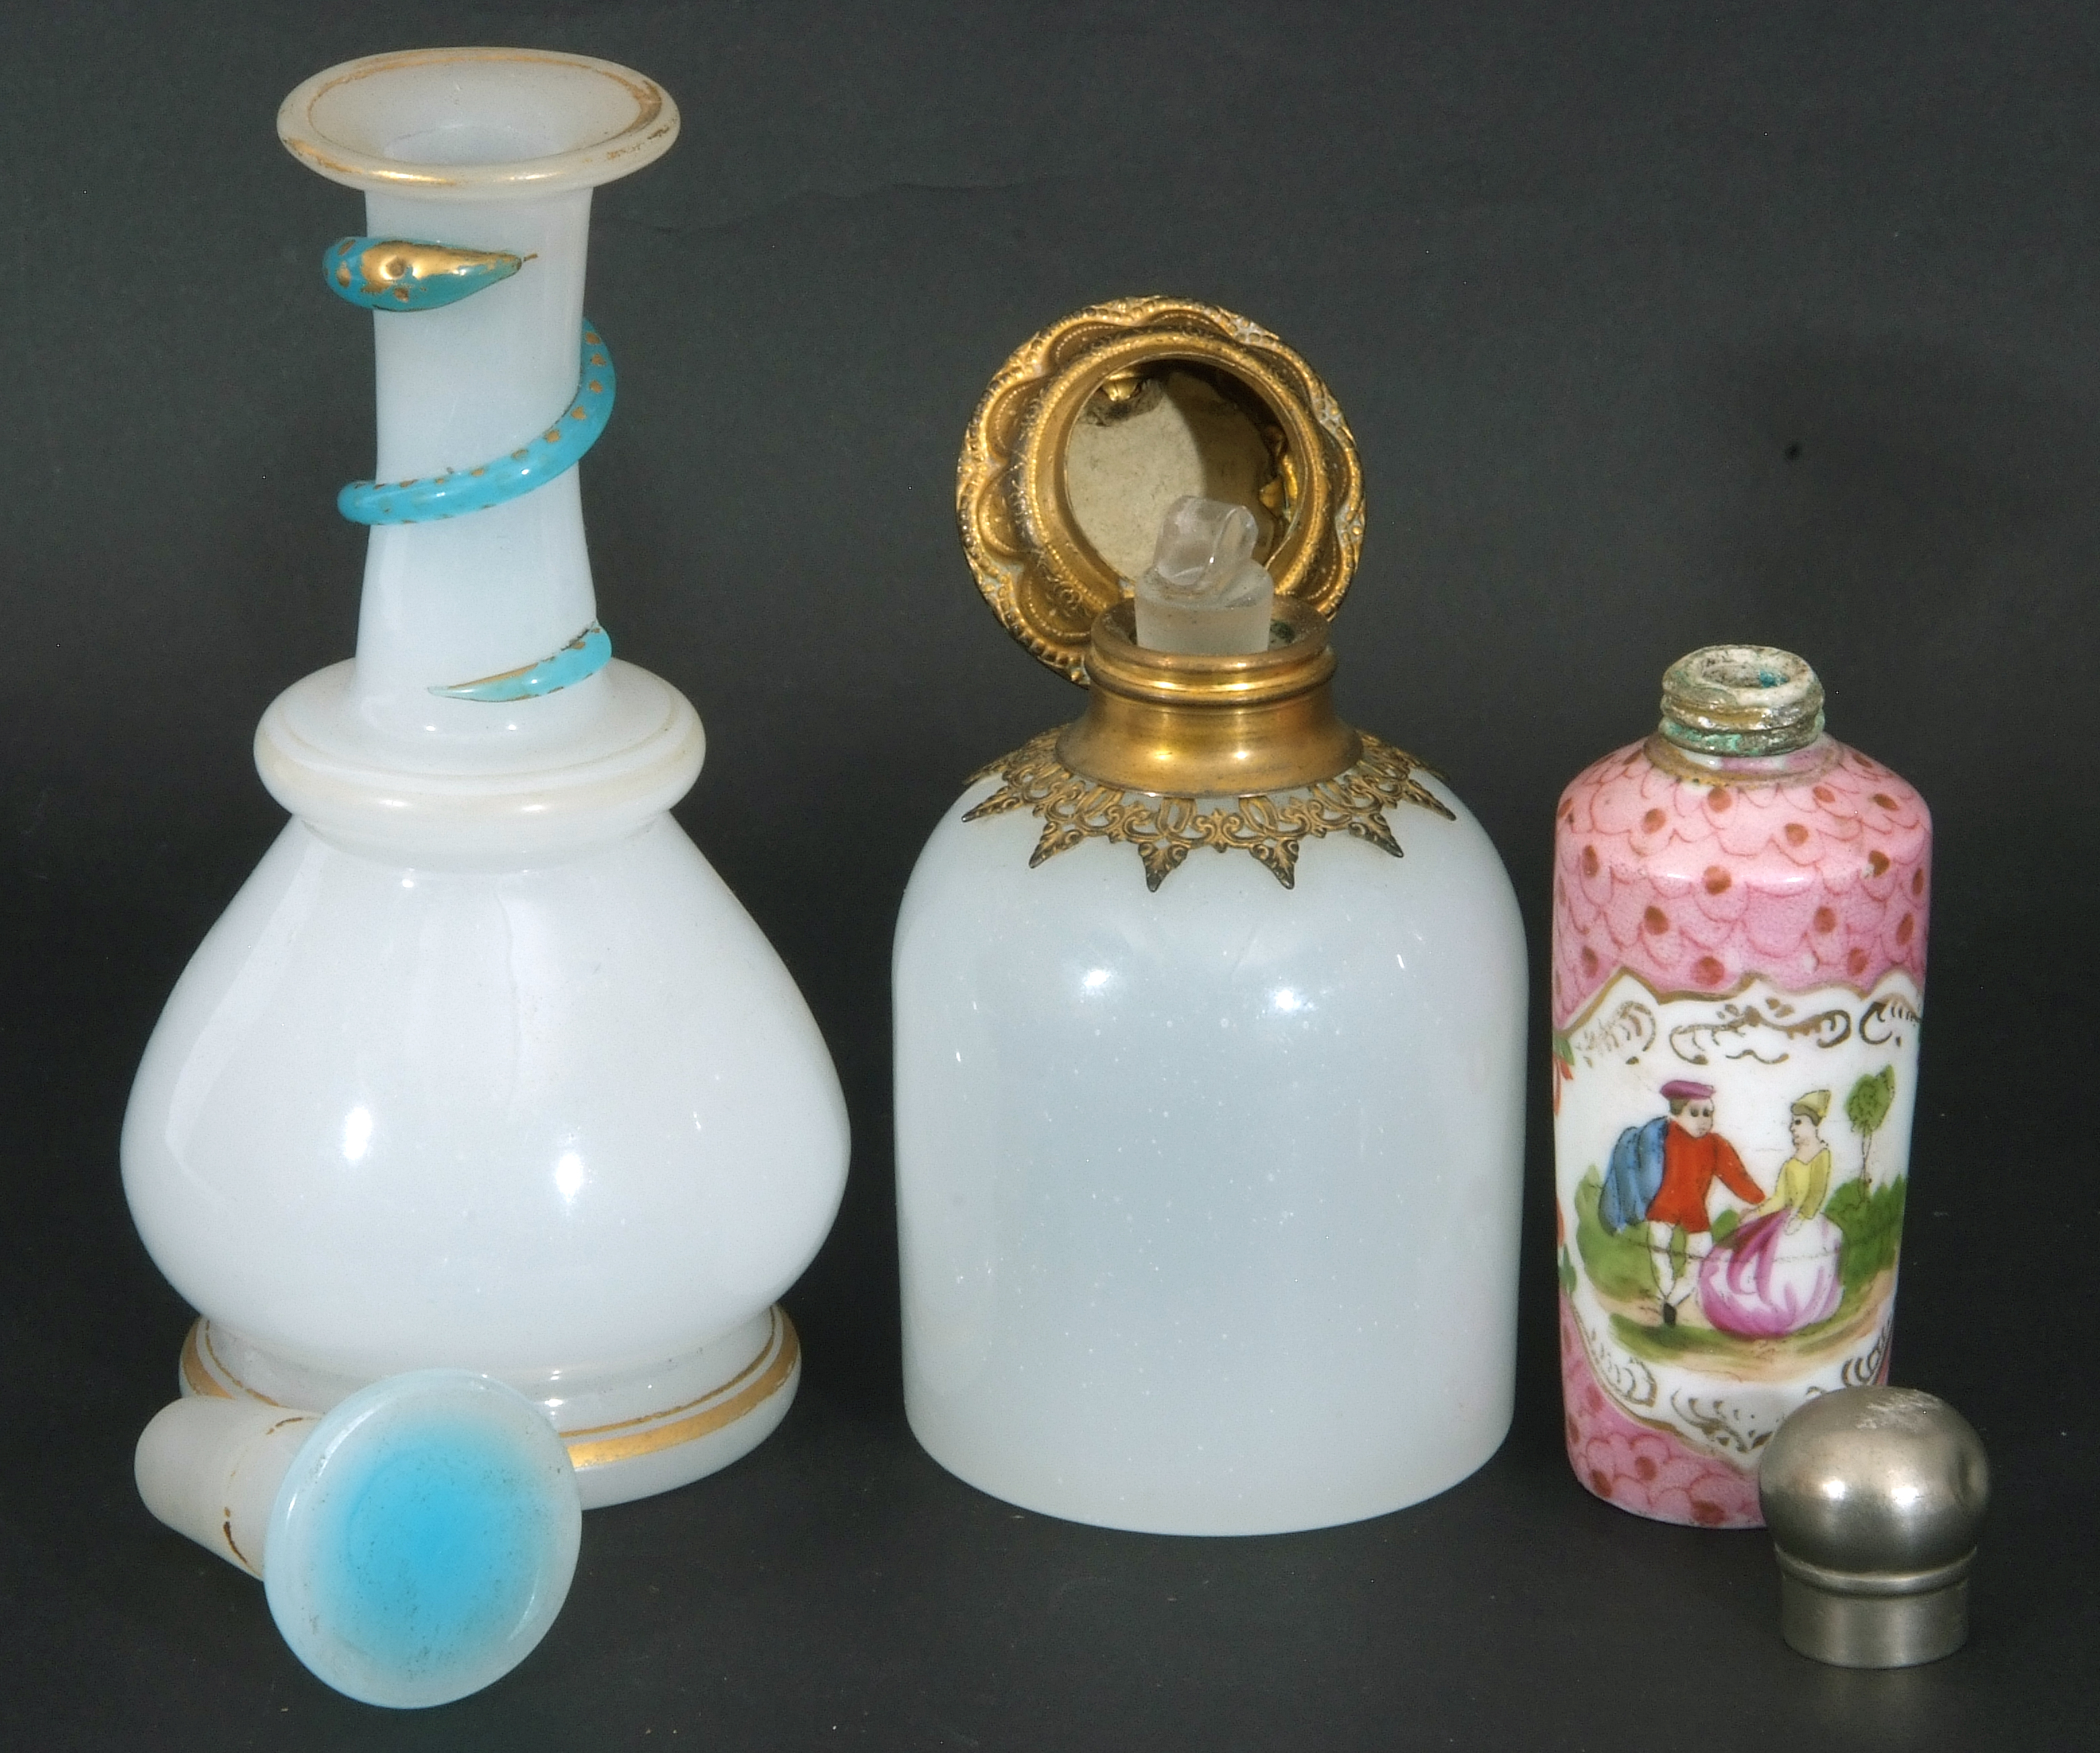 Mixed Lot: 19th century milk glass scent bottle with gilt metal hinged lid with inset to cap, a - Image 12 of 12